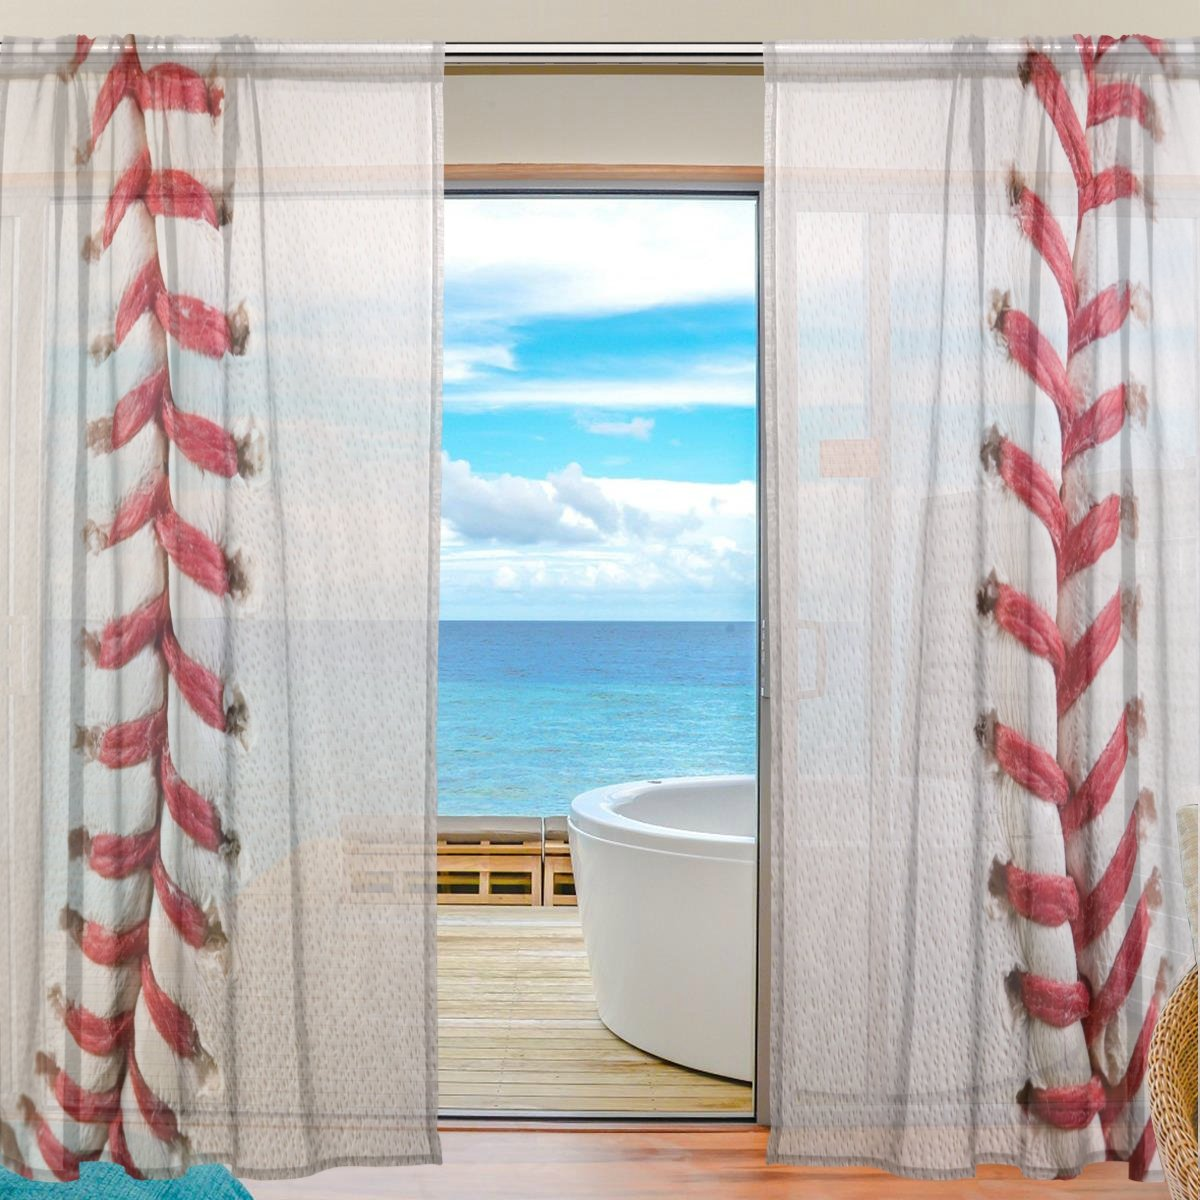 SEULIFE Window Sheer Curtain Sport Ball Baseball Voile Curtain Drapes for Door Kitchen Living Room Bedroom 55x78 inches 2 Panels g2749562p113c127s169